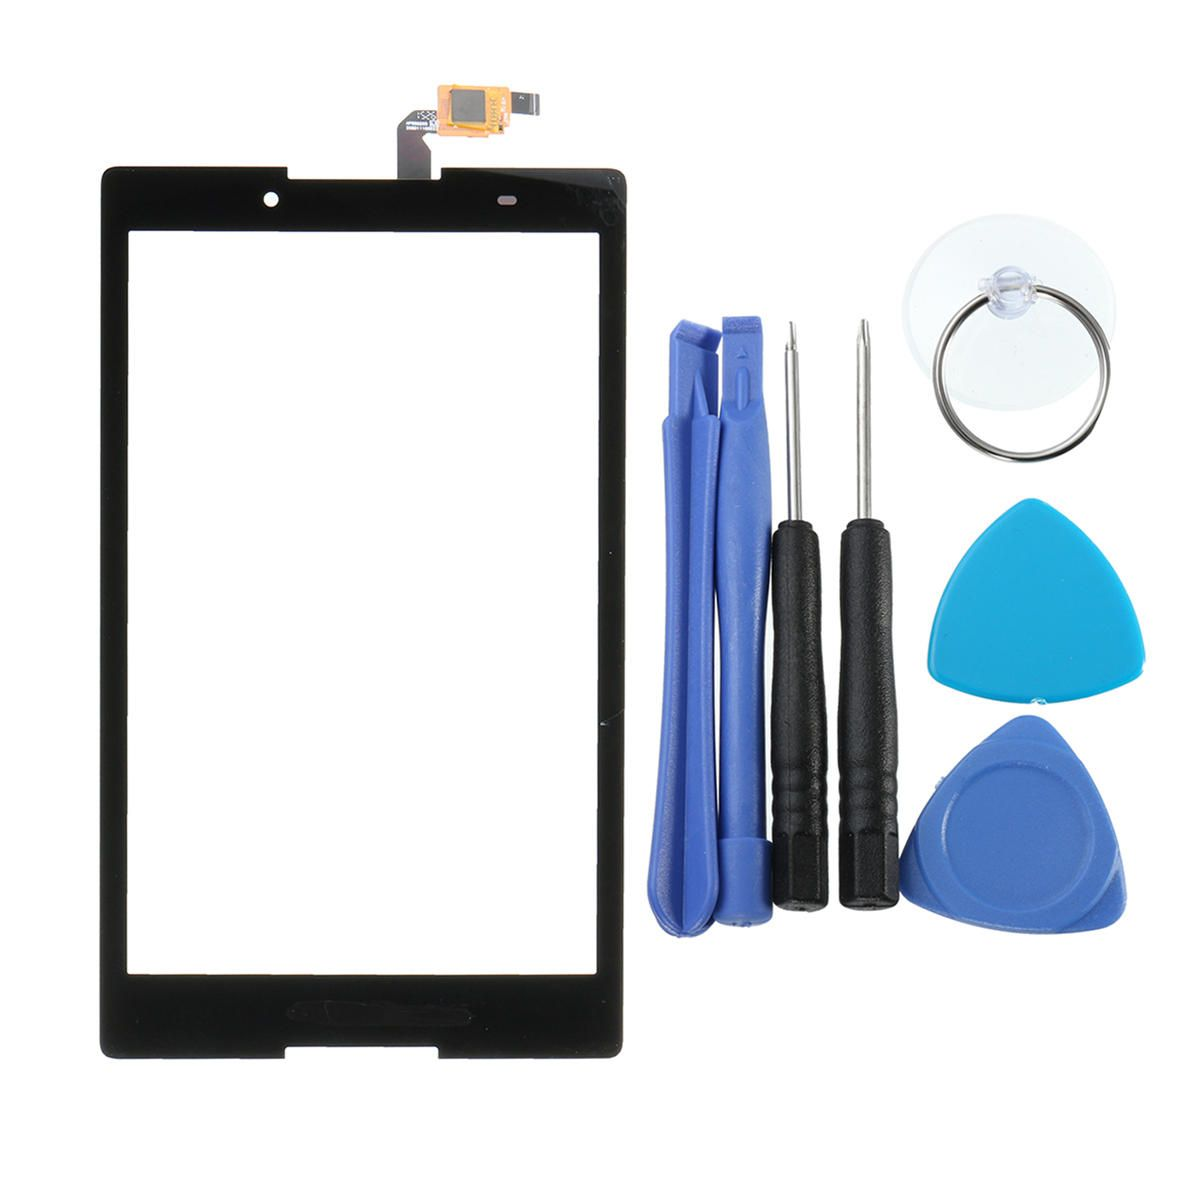 Replacement Touch Digitizer External Screen+Tools For Lenovo Tab 2 A8-50f